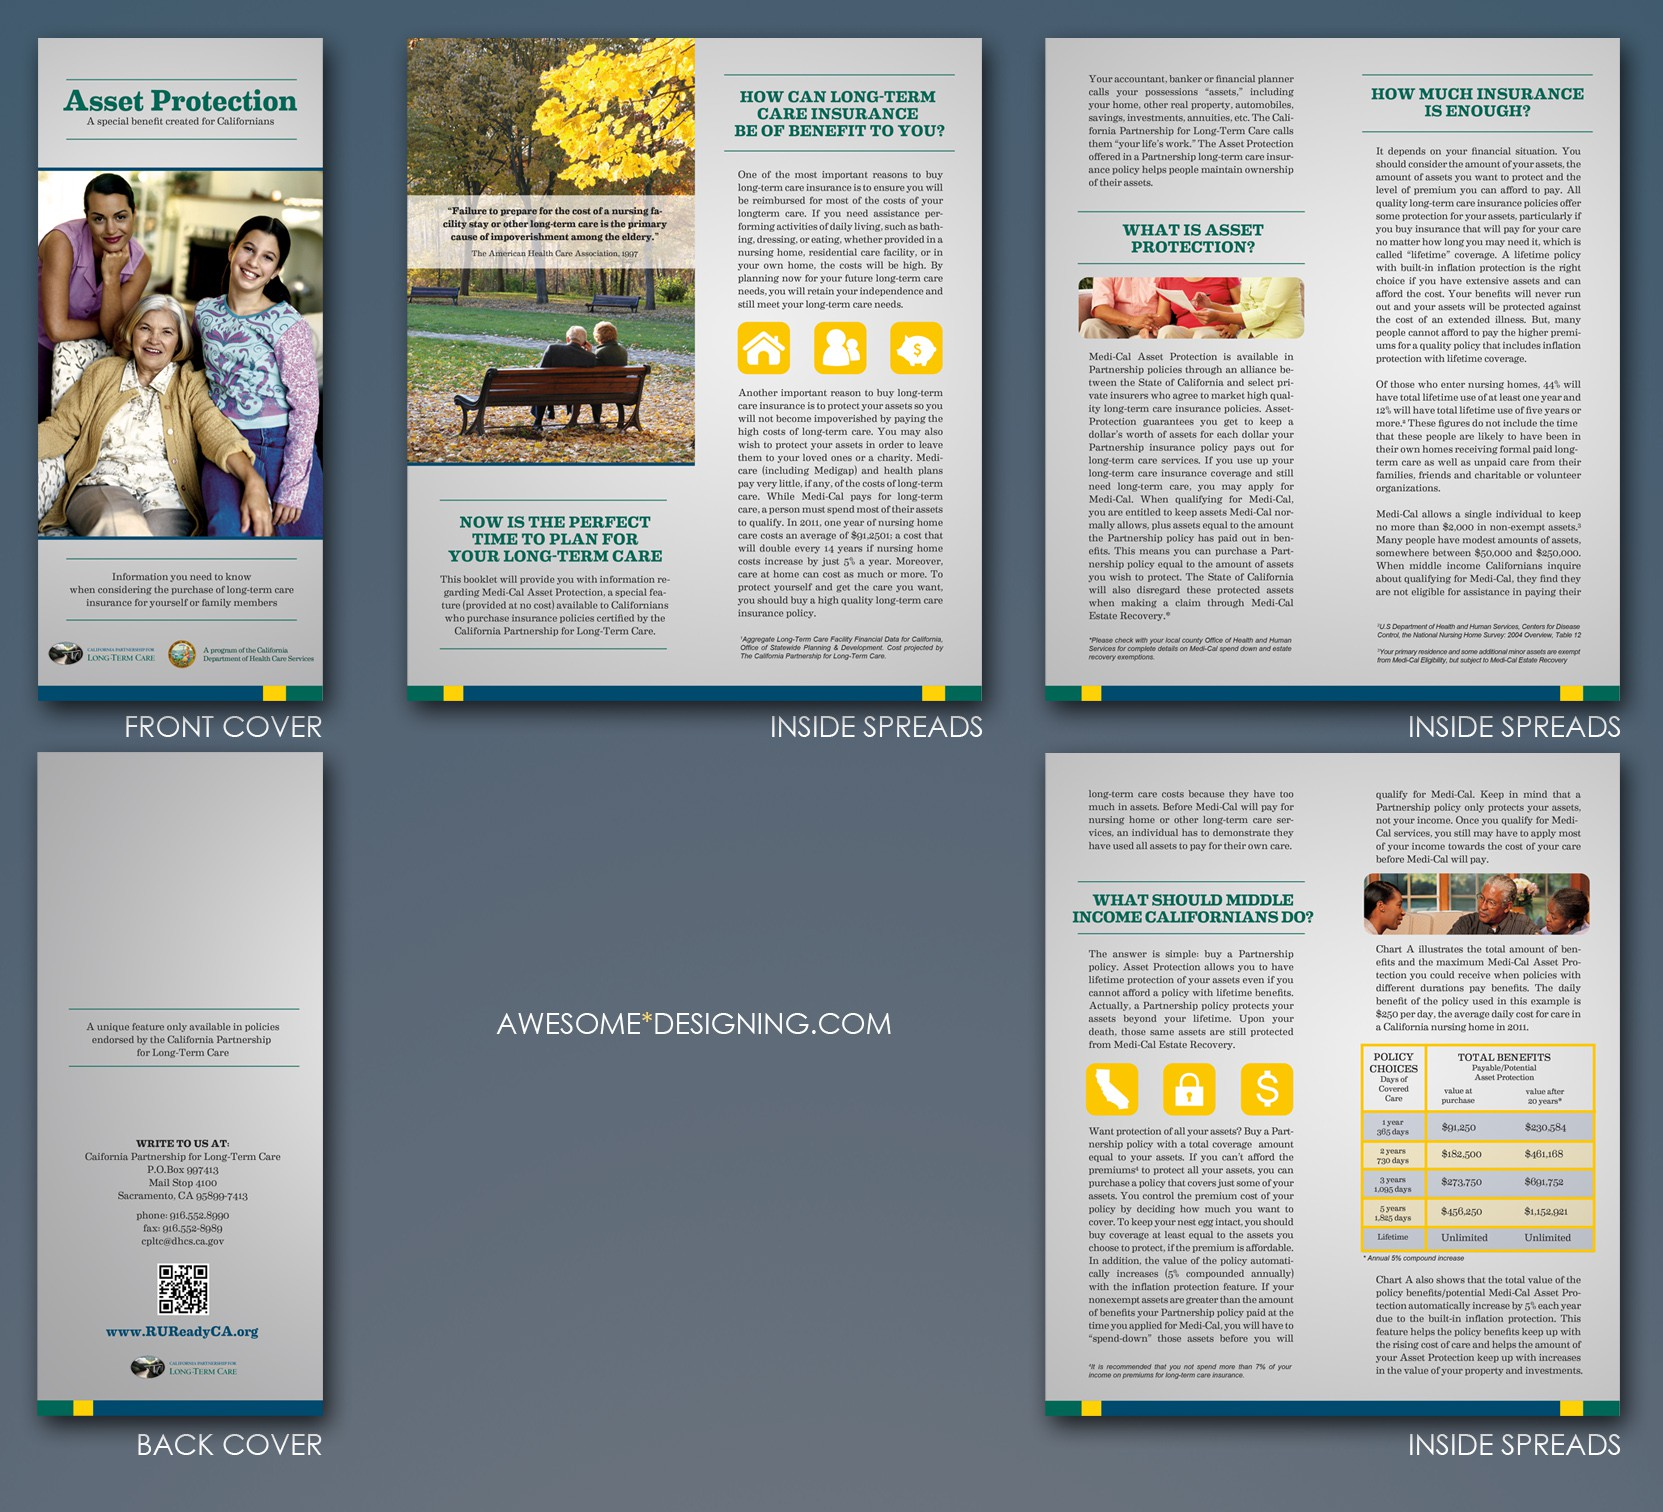 Create the next brochure design for The California Partnership for Long-Term Care